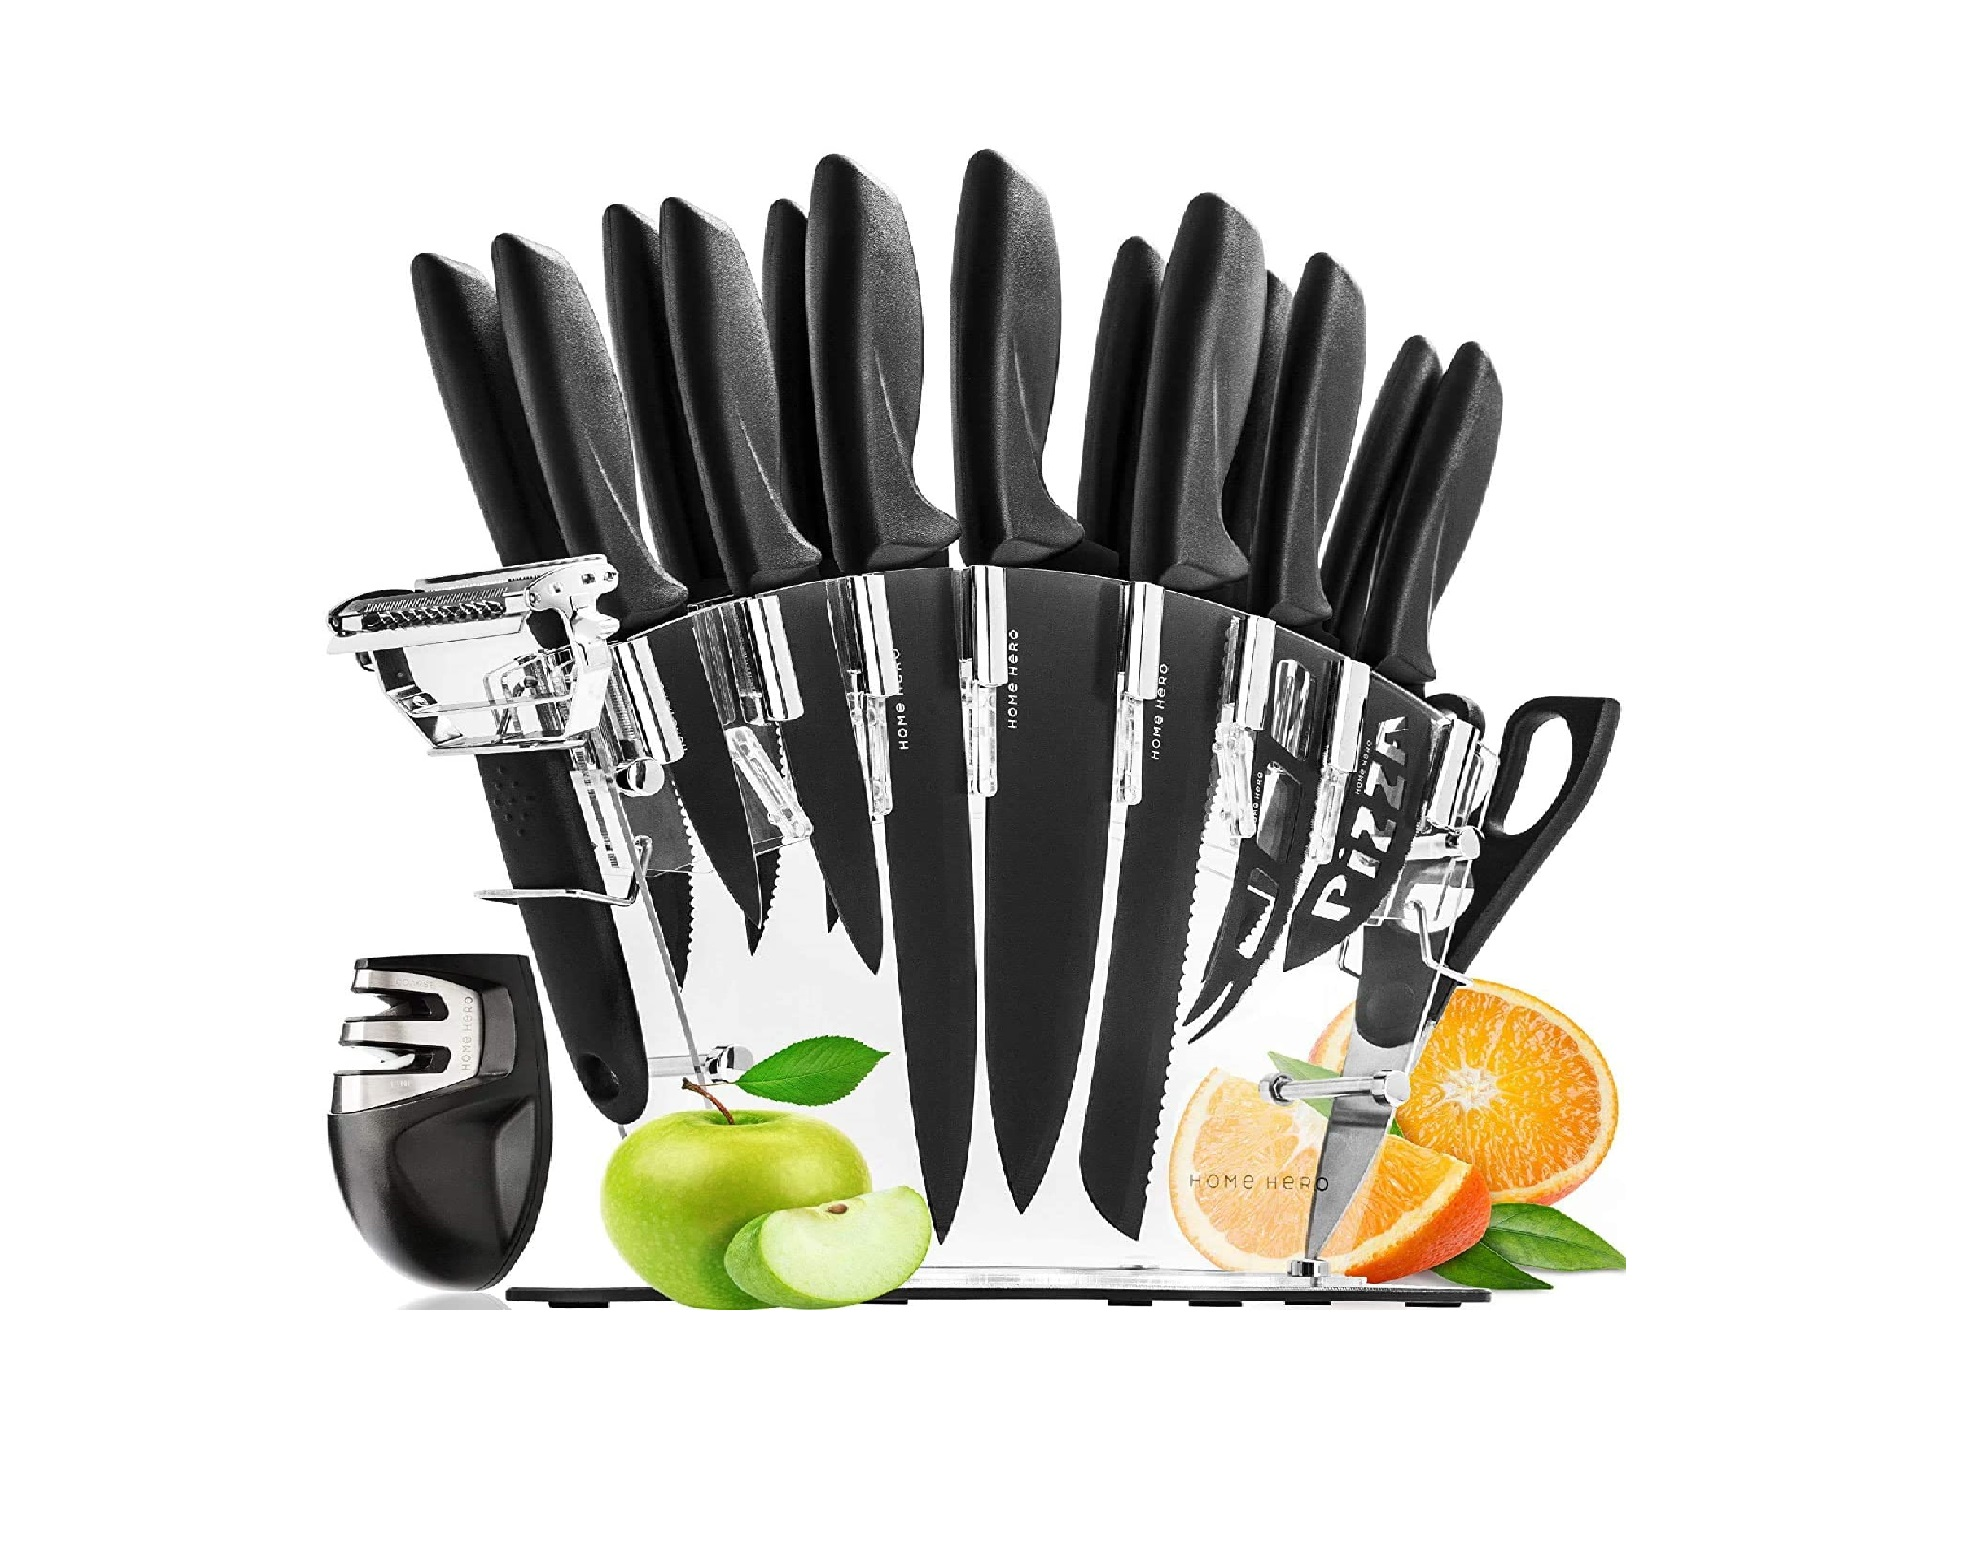 Top 5 Best Knife Set Under 100 in 2020 Reviews